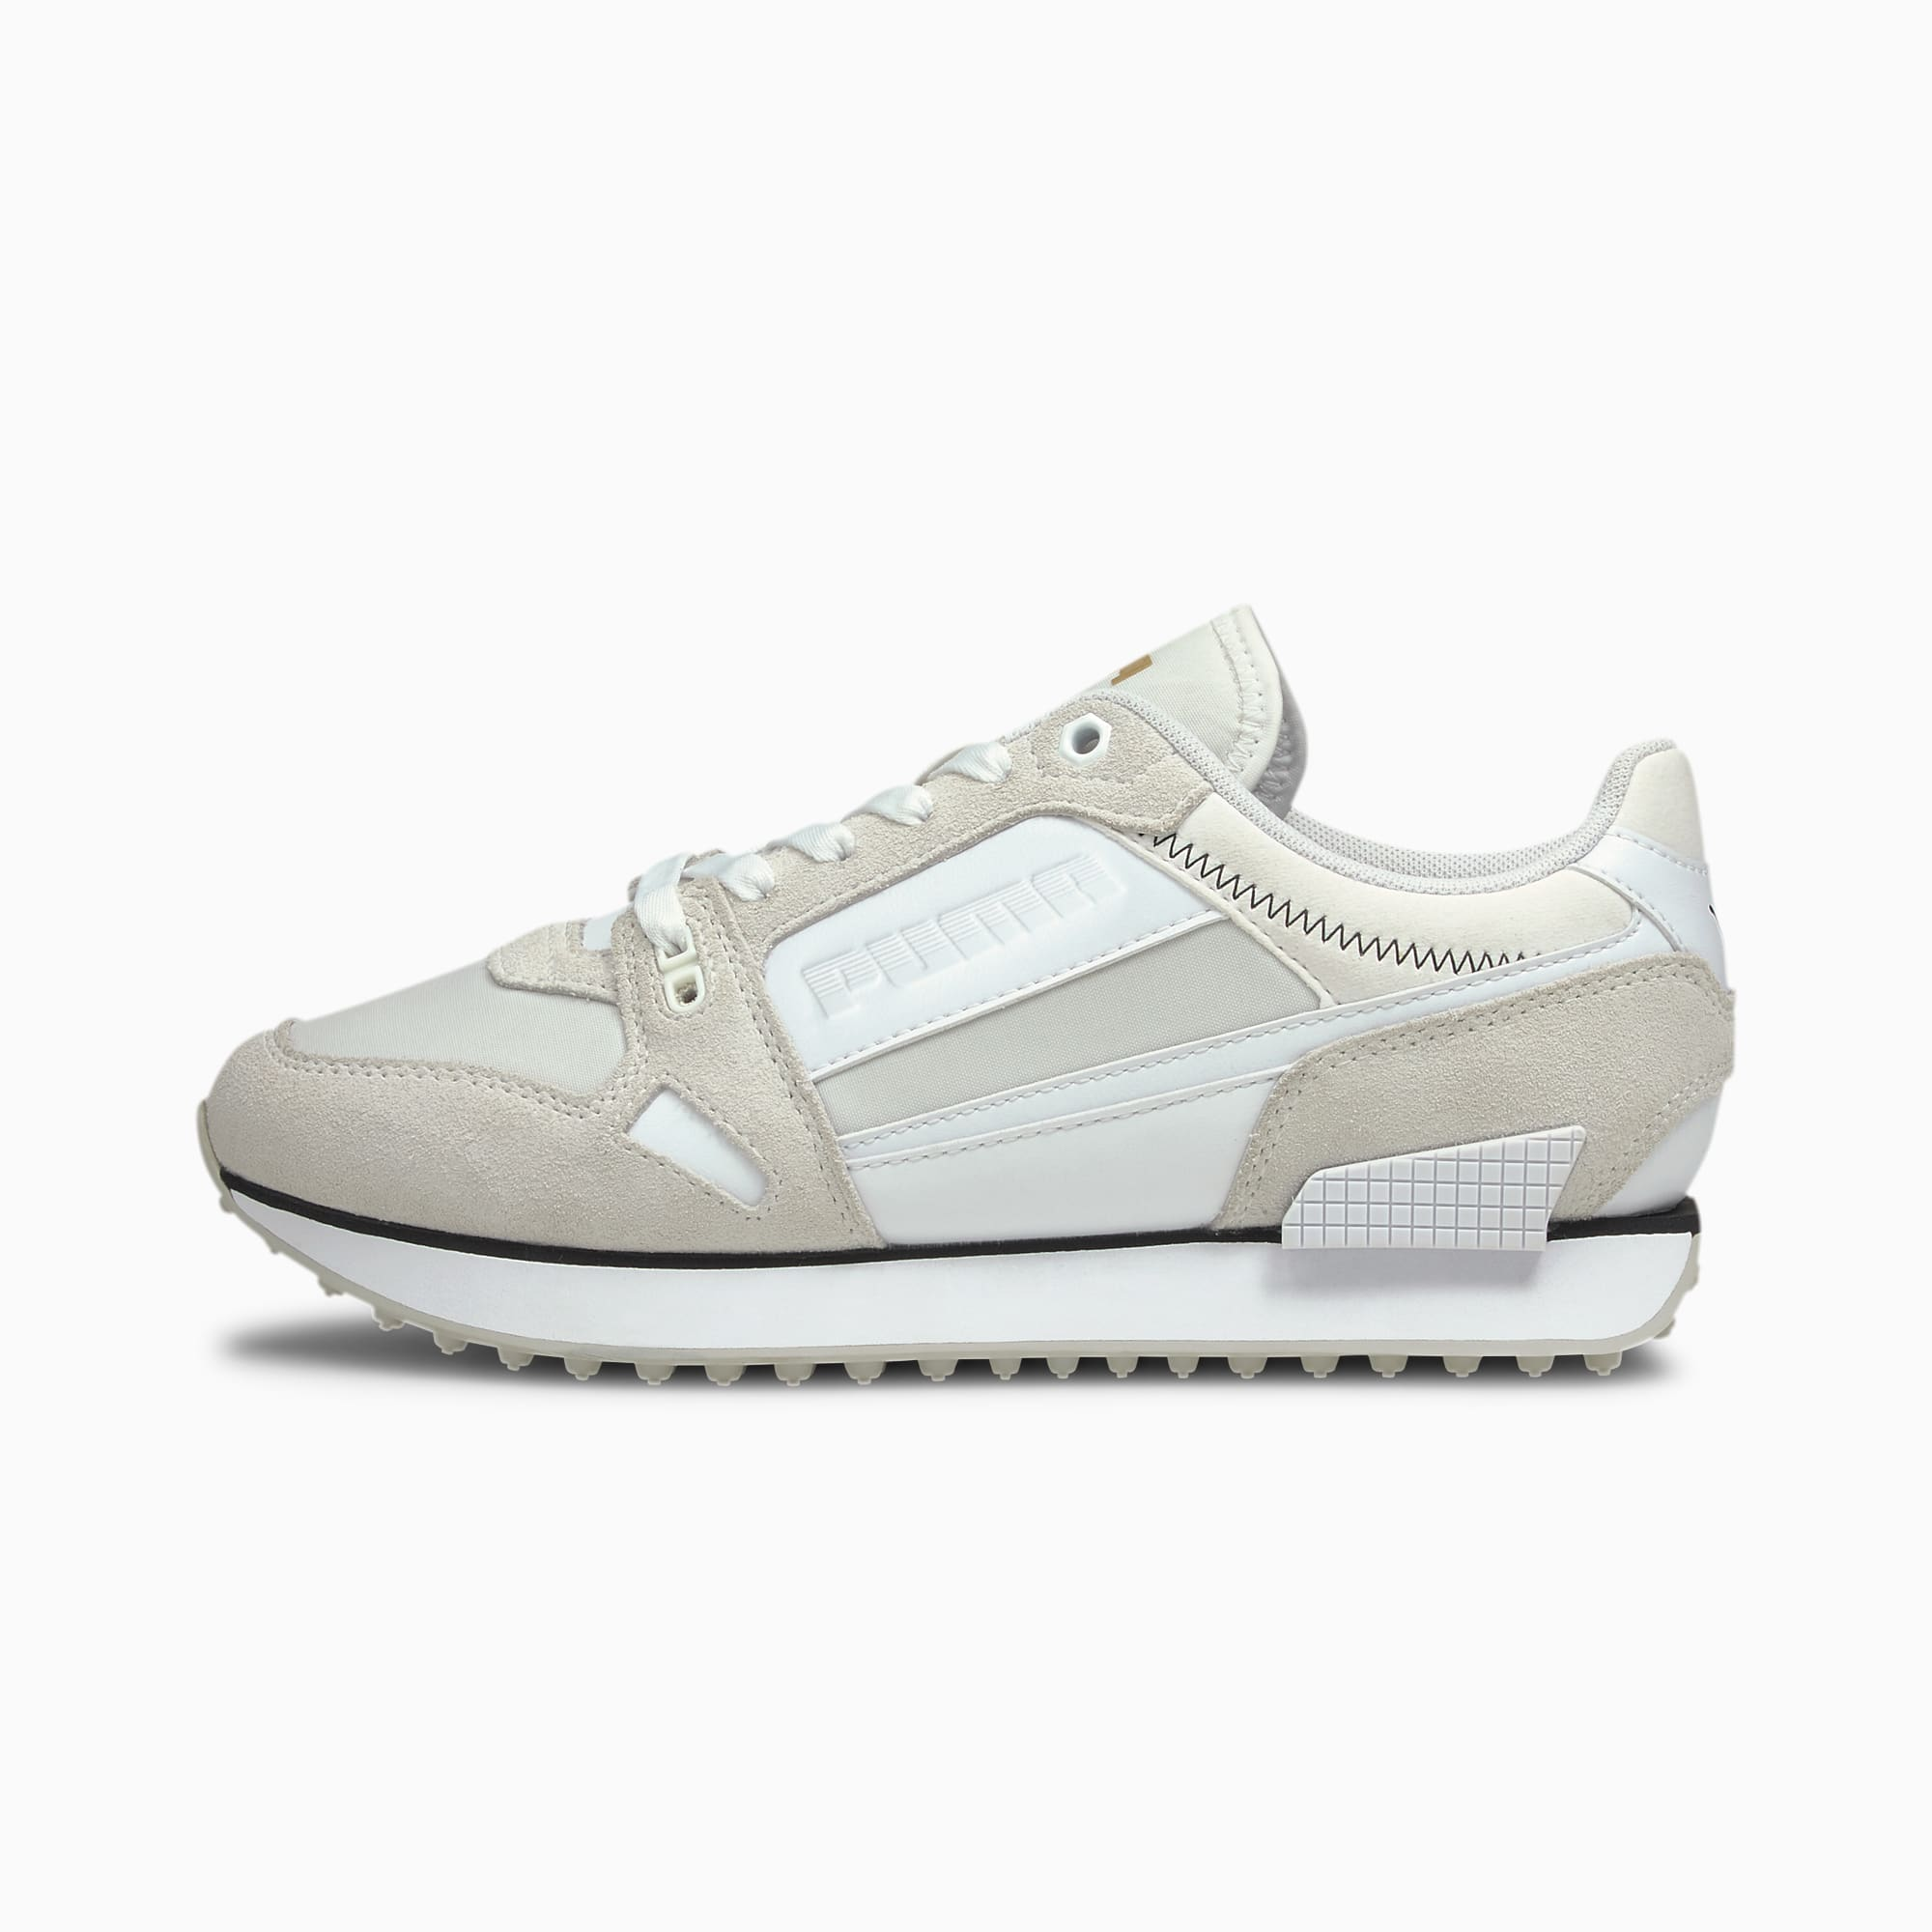 Puma Mile Rider Chrome Desert Women's Sneakers